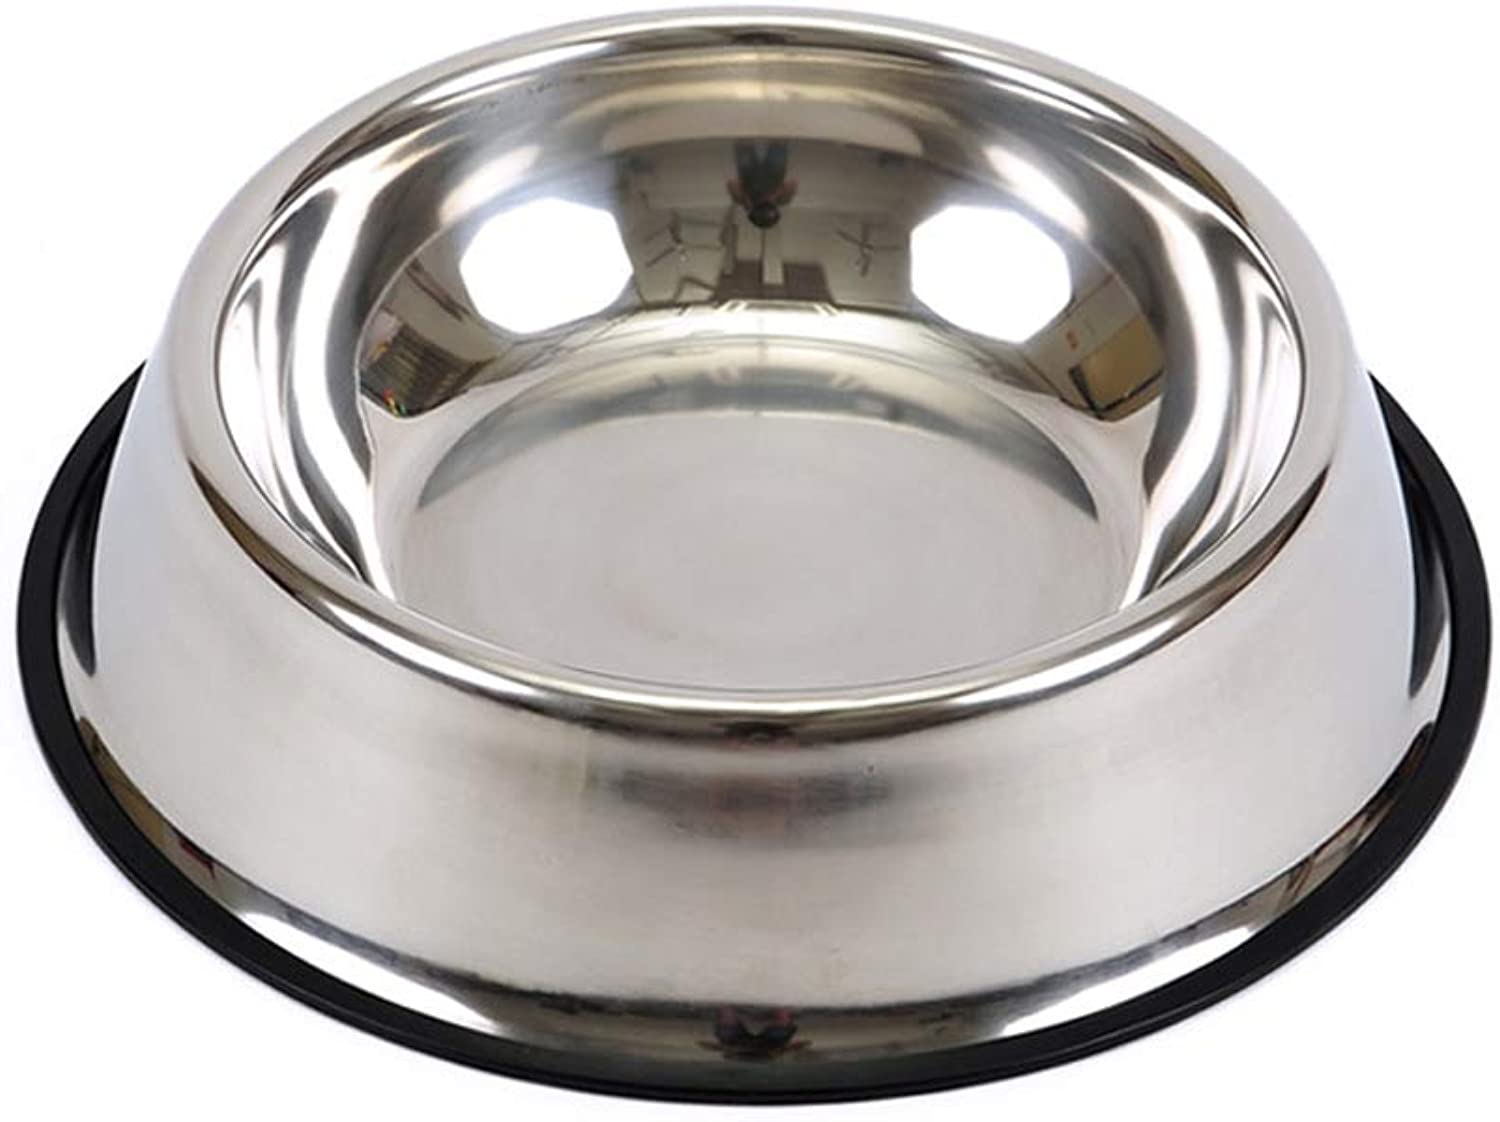 Pets Food Bowl Stainless Steel Dog Bowl, Rubber Base for Small and Medium Dogs, Pet Feeding Bowl and Water Bowl Pet Supplies Pet Diet Water